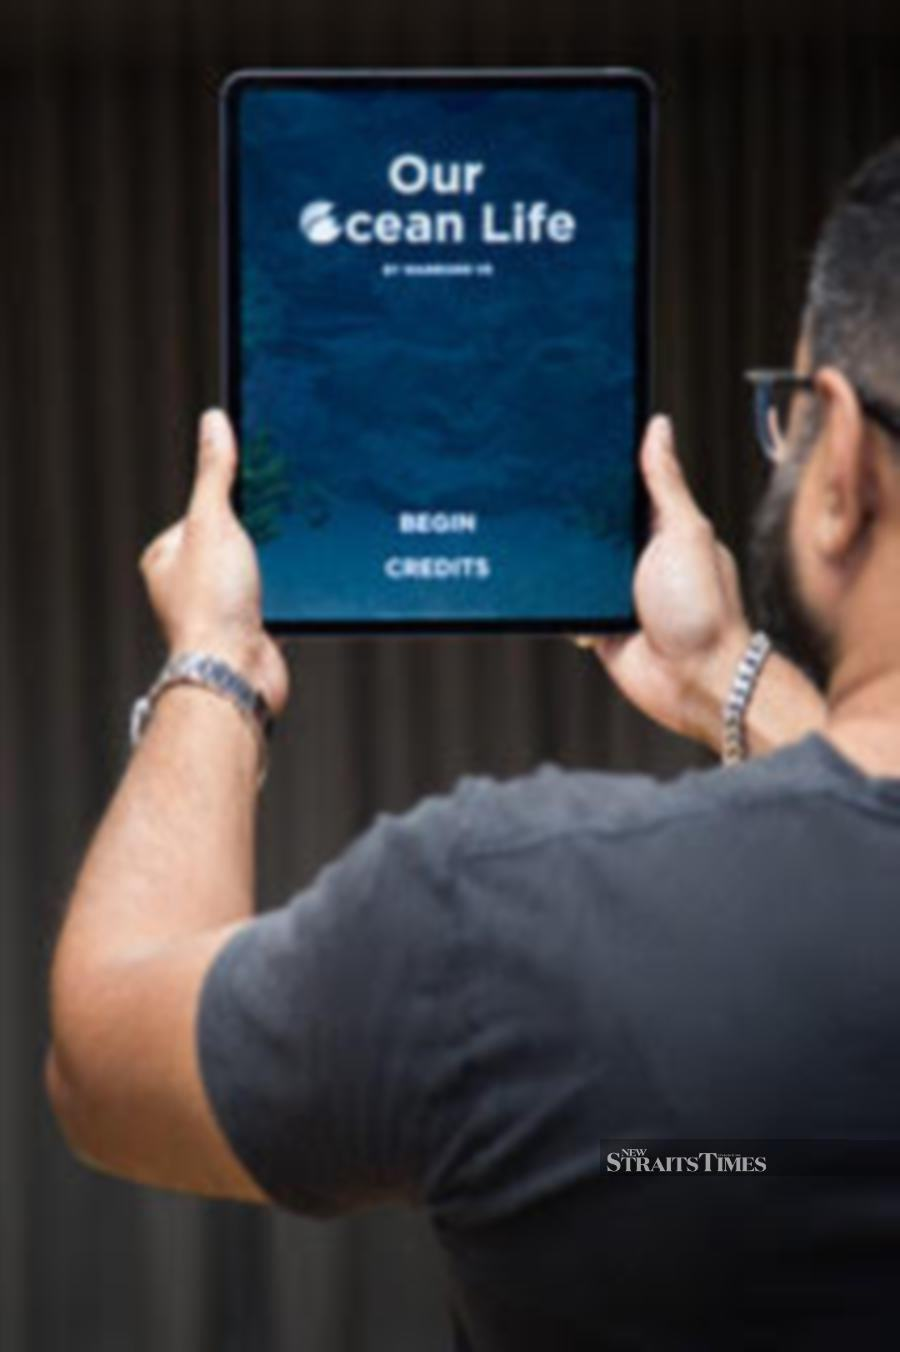 Immersive media company Warrior9 VR demonstrates their augmented reality experience Our Ocean Life.